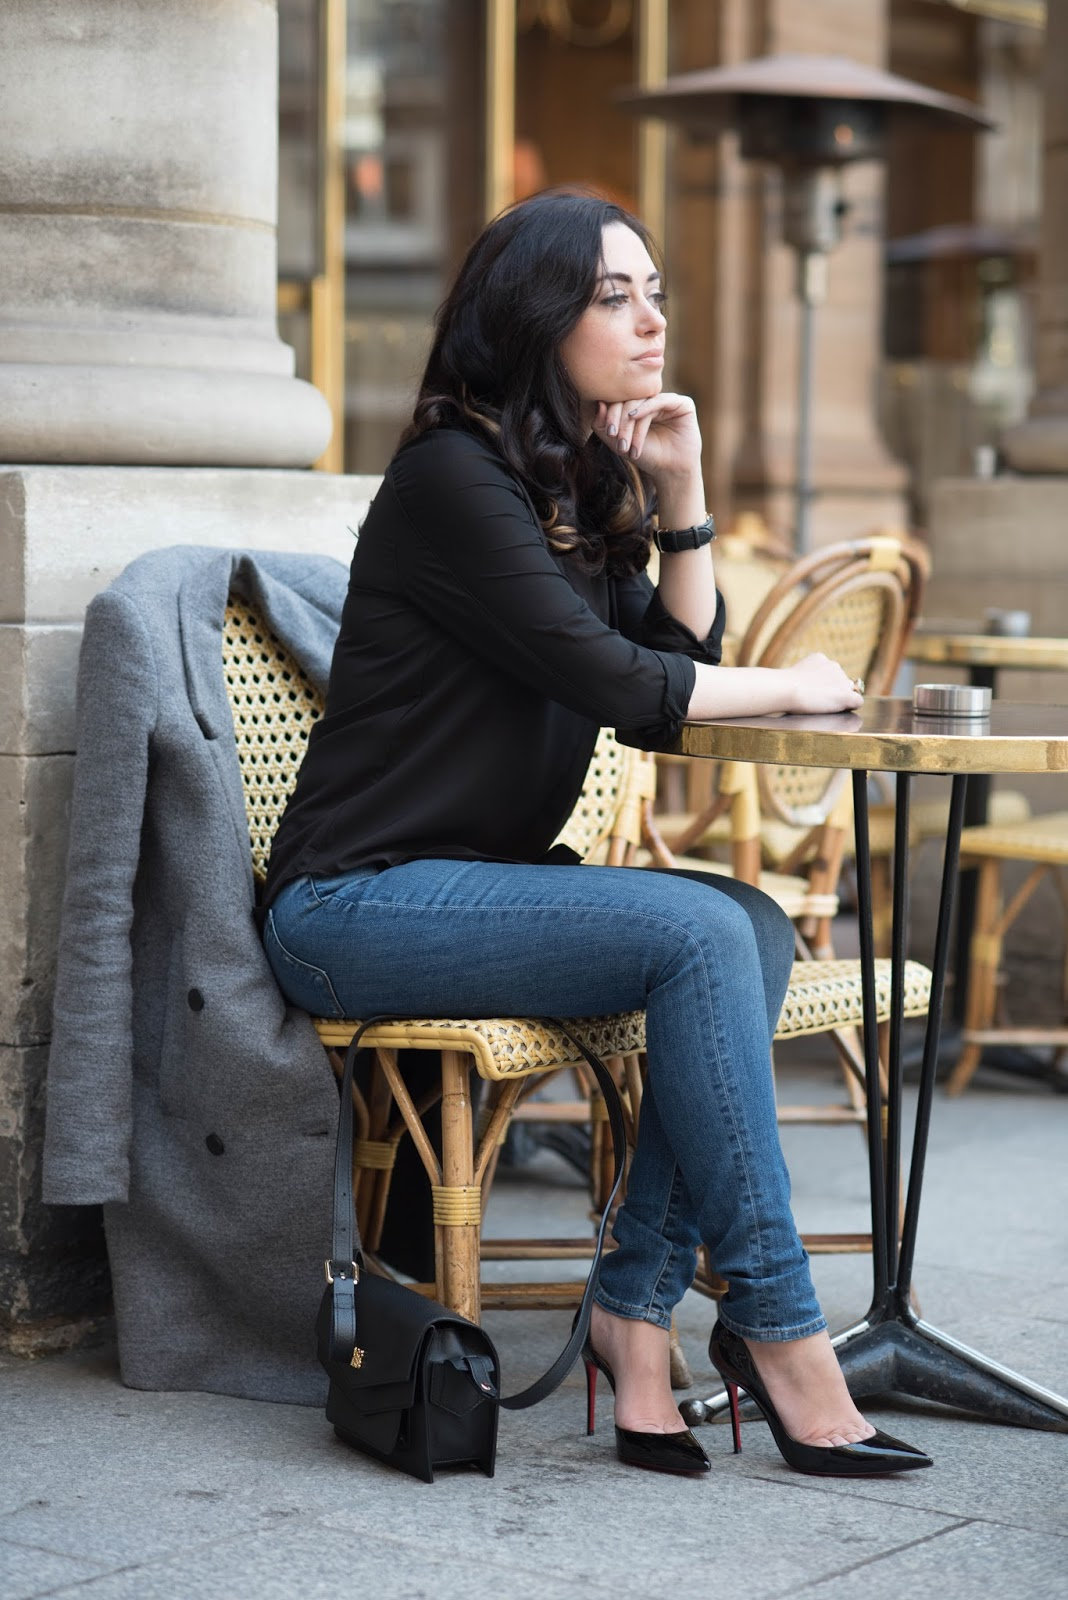 coco and vera, top paris fashion blog, casual style, outfit, angel reinares handbag, christian louboutin heels, the castings jeans, paris street style, cafe life, chic wish blouse, CC Lifestyles watch